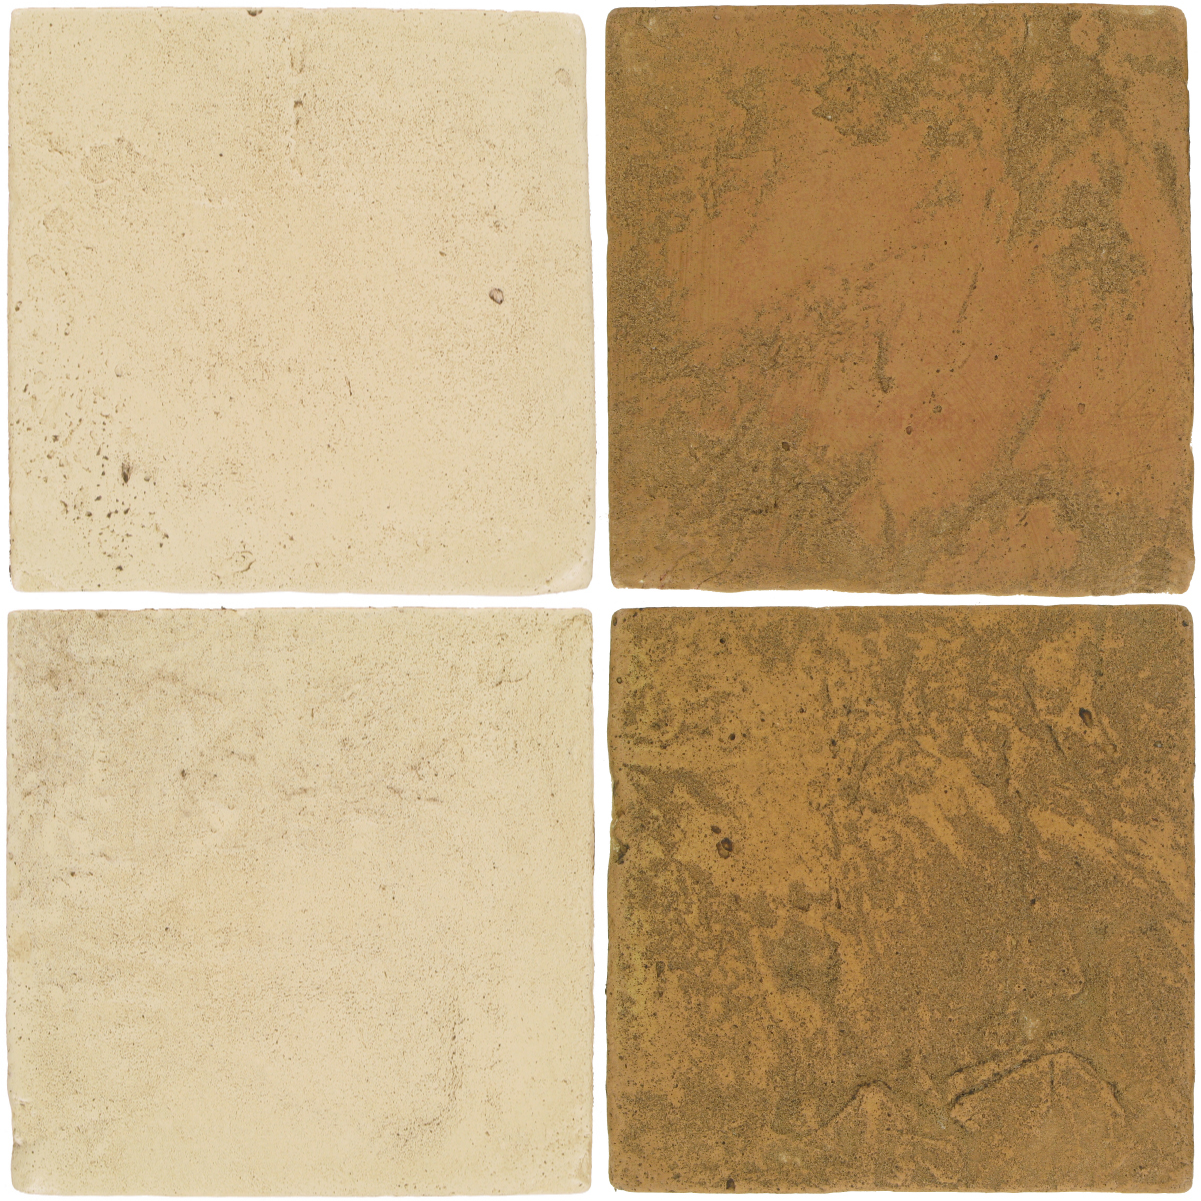 Pedralbes Antique Terracotta  2 Color Combinations  VTG-PGPW Pergamino White + VTG-PSSW Siena Wheat